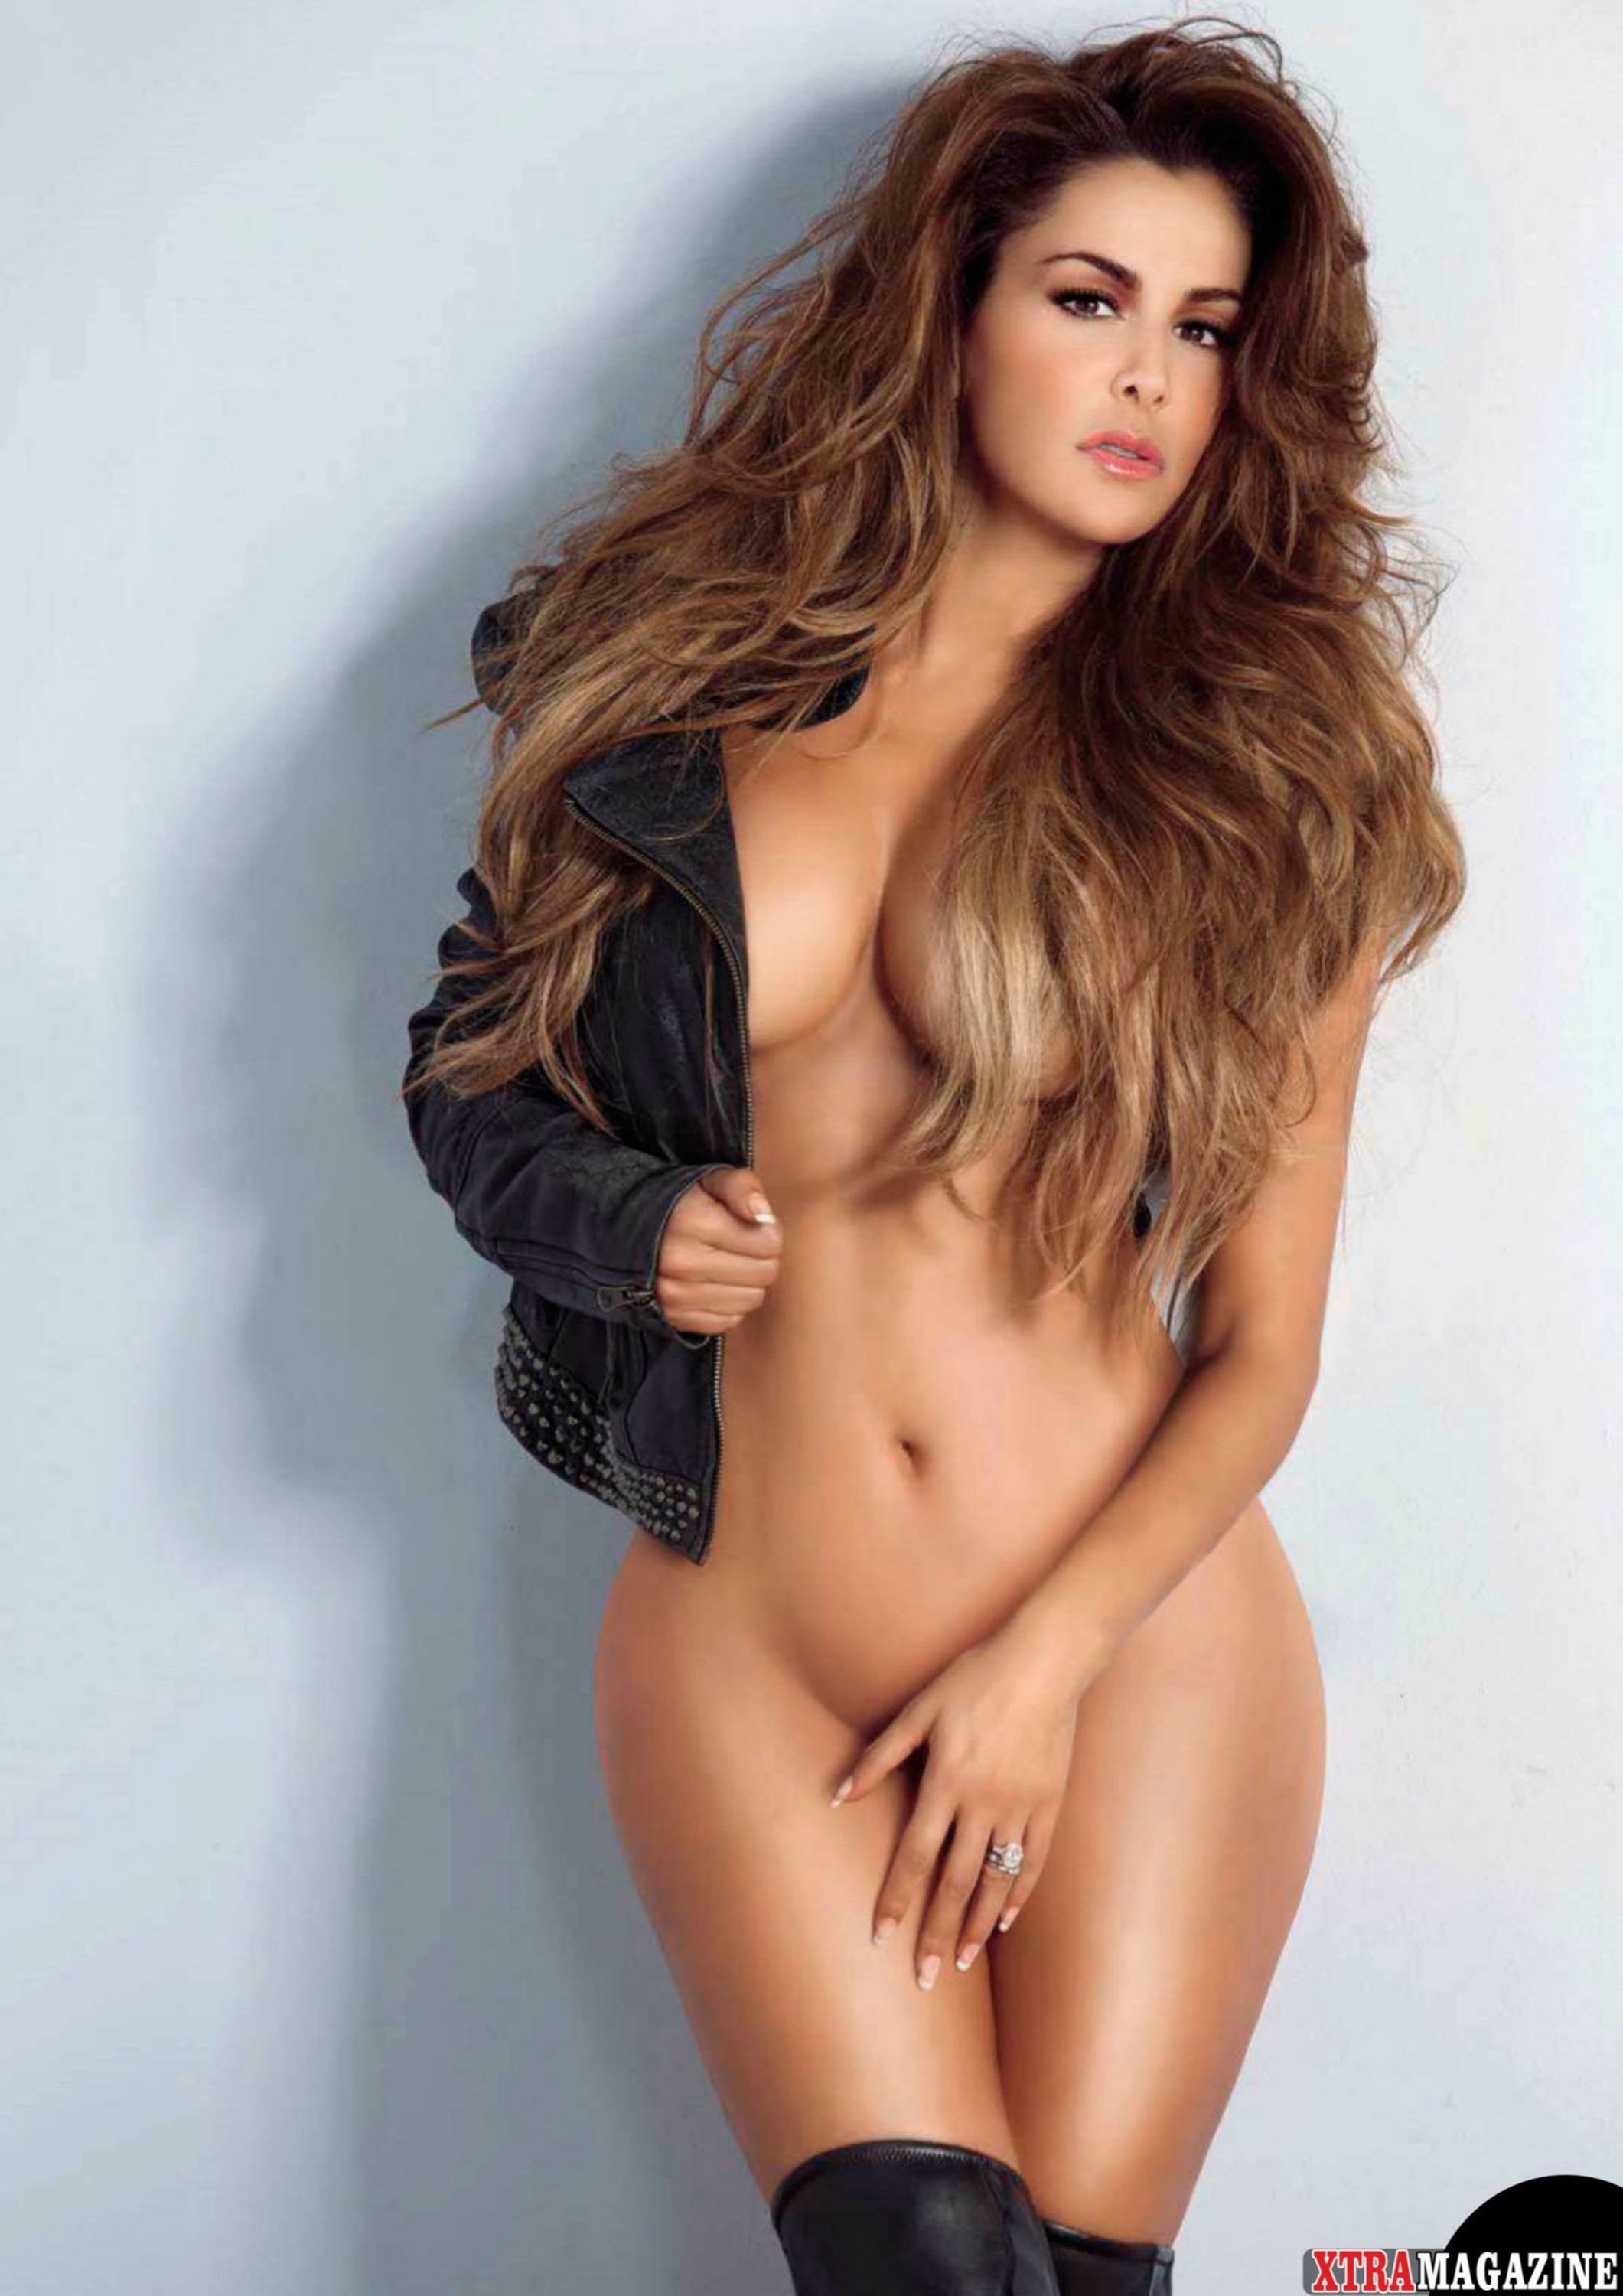 Ninel conde naked pictures-5042